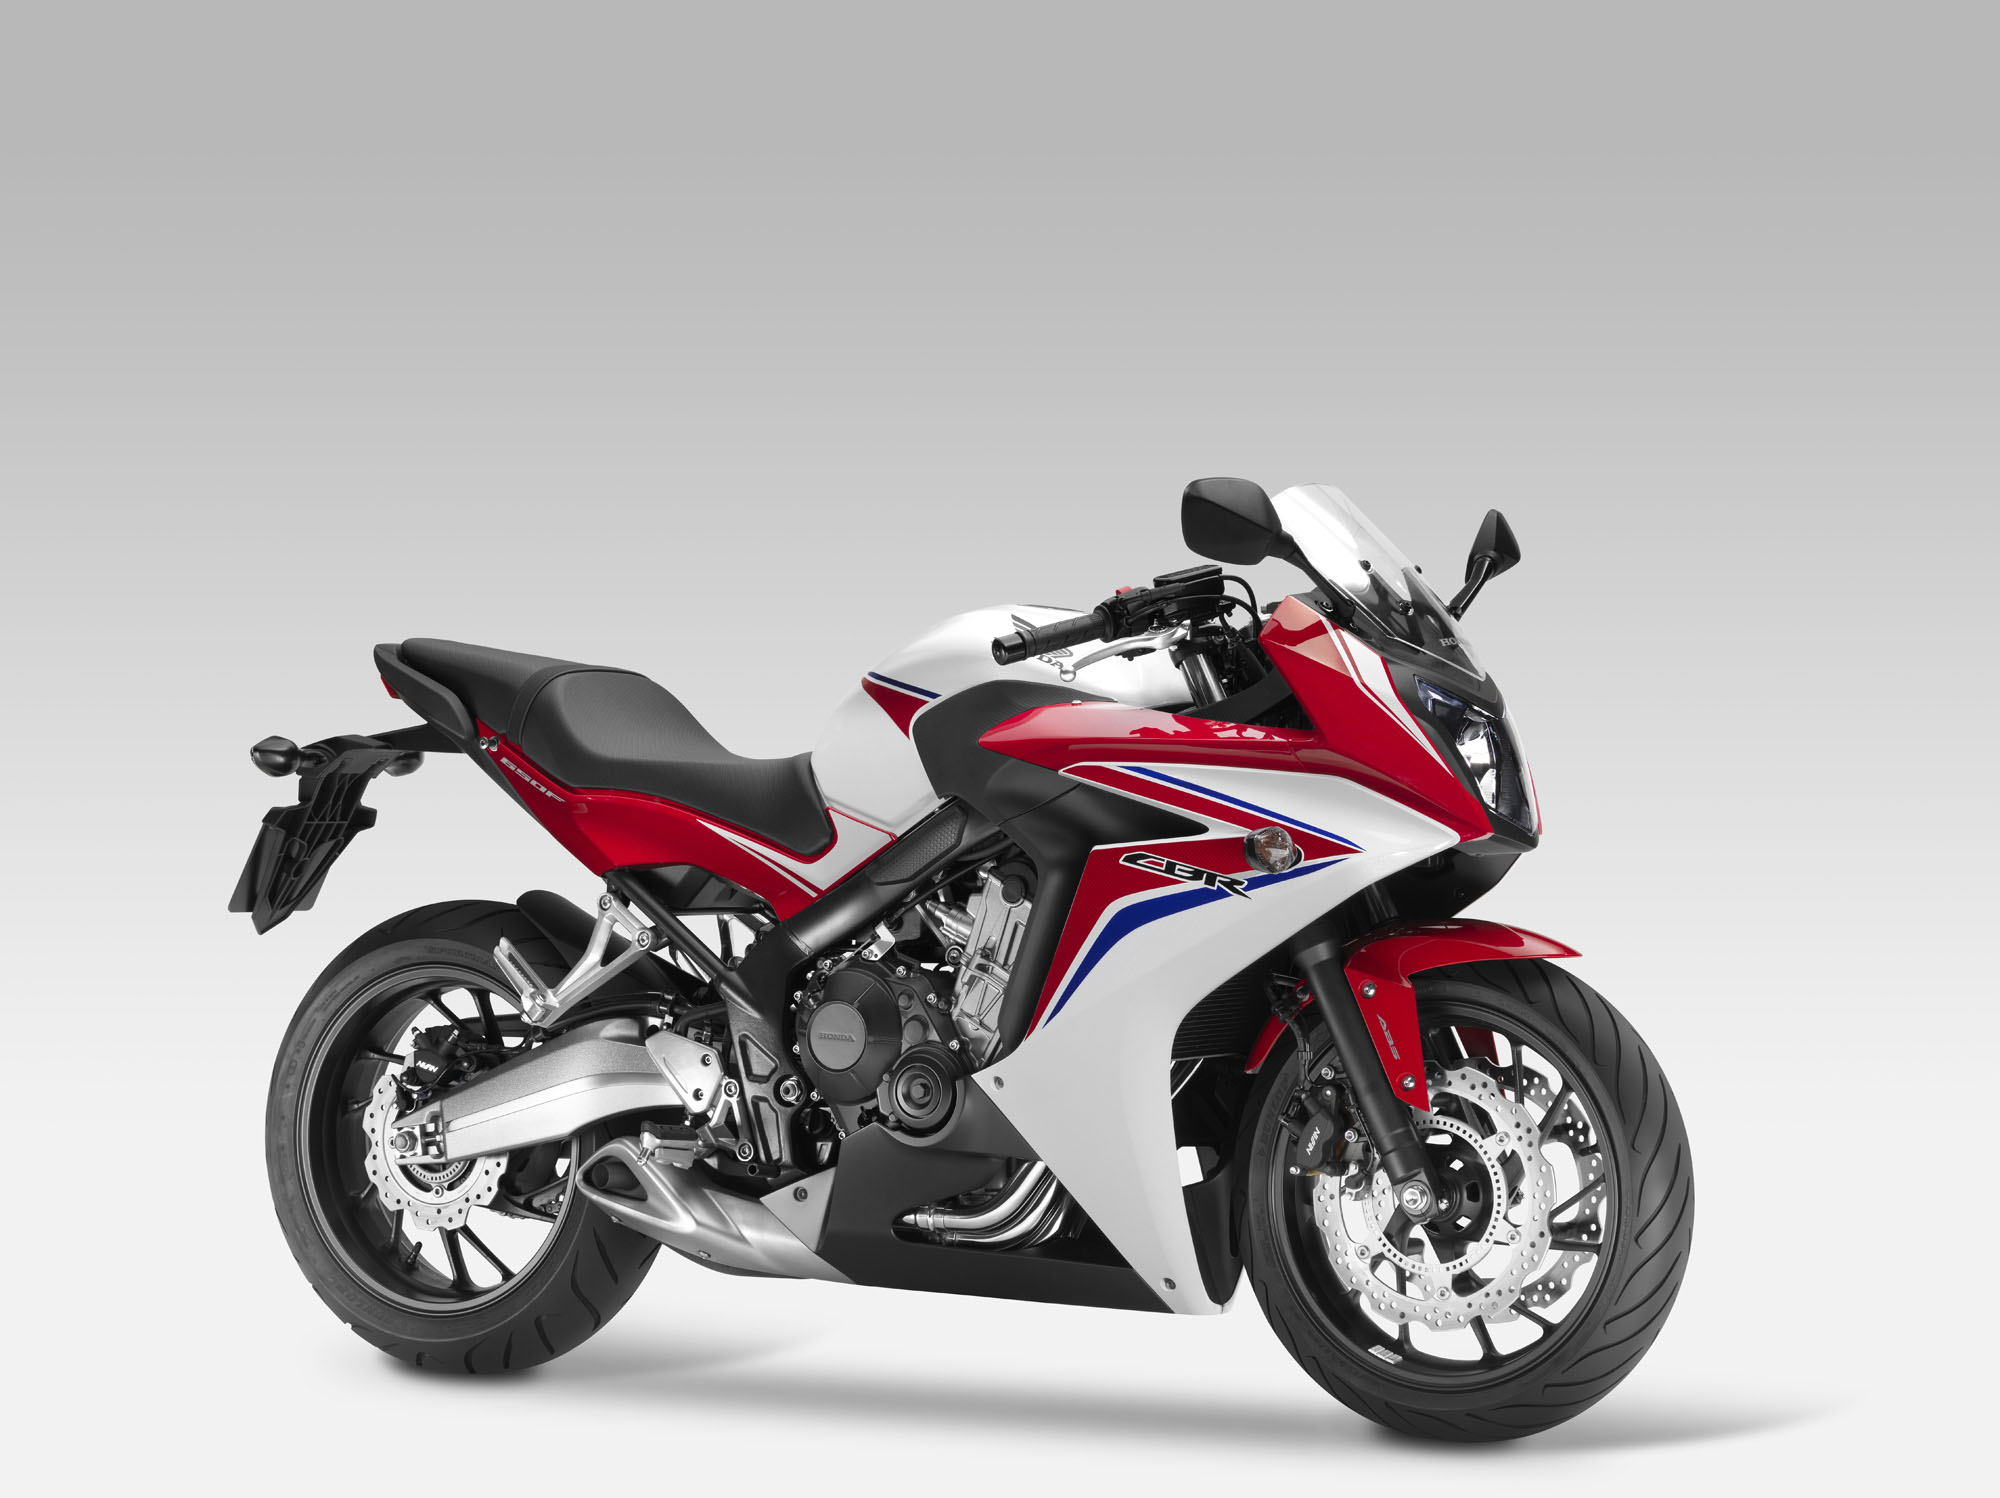 Two new Honda 650s unveiled